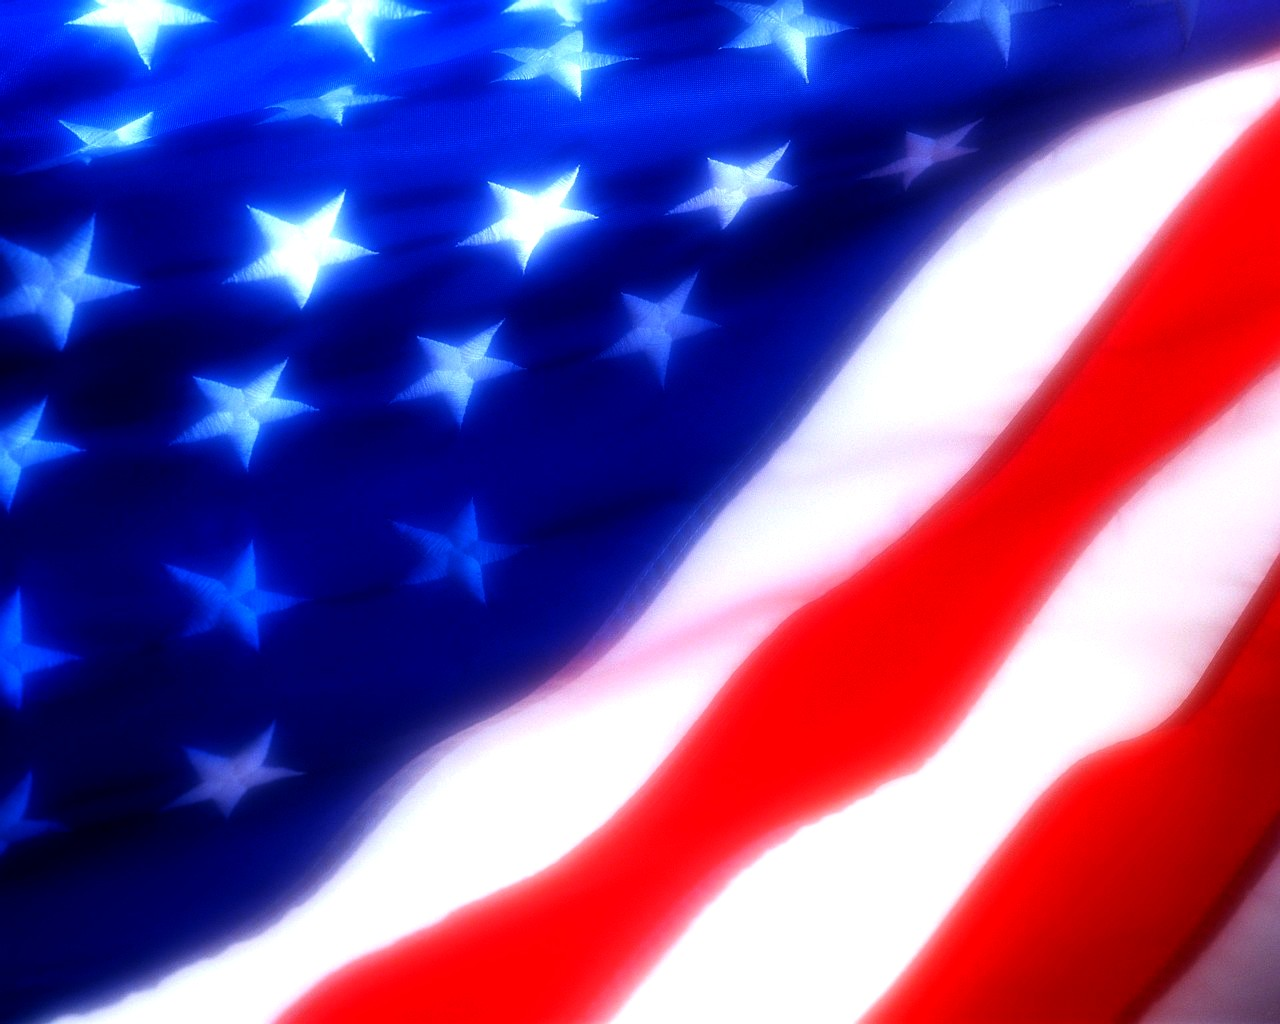 American Flag Powerpoint Background HD wallpaper background 1280x1024